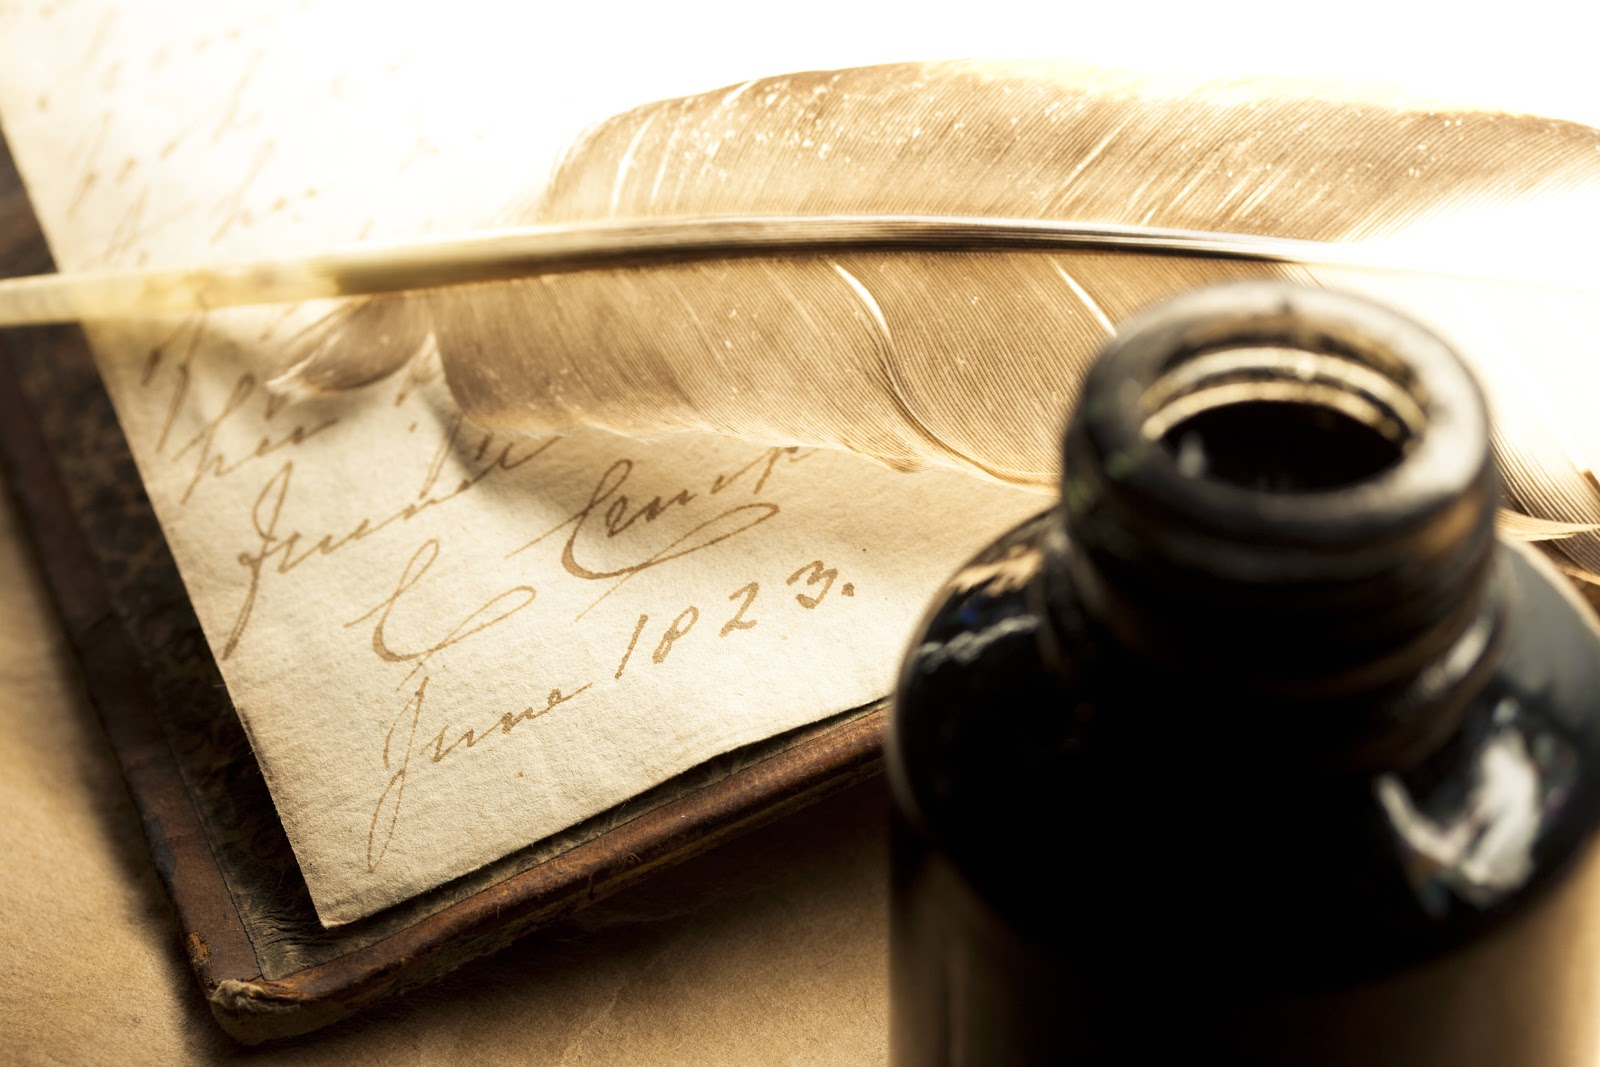 Feather quill and ink bottle with parchment